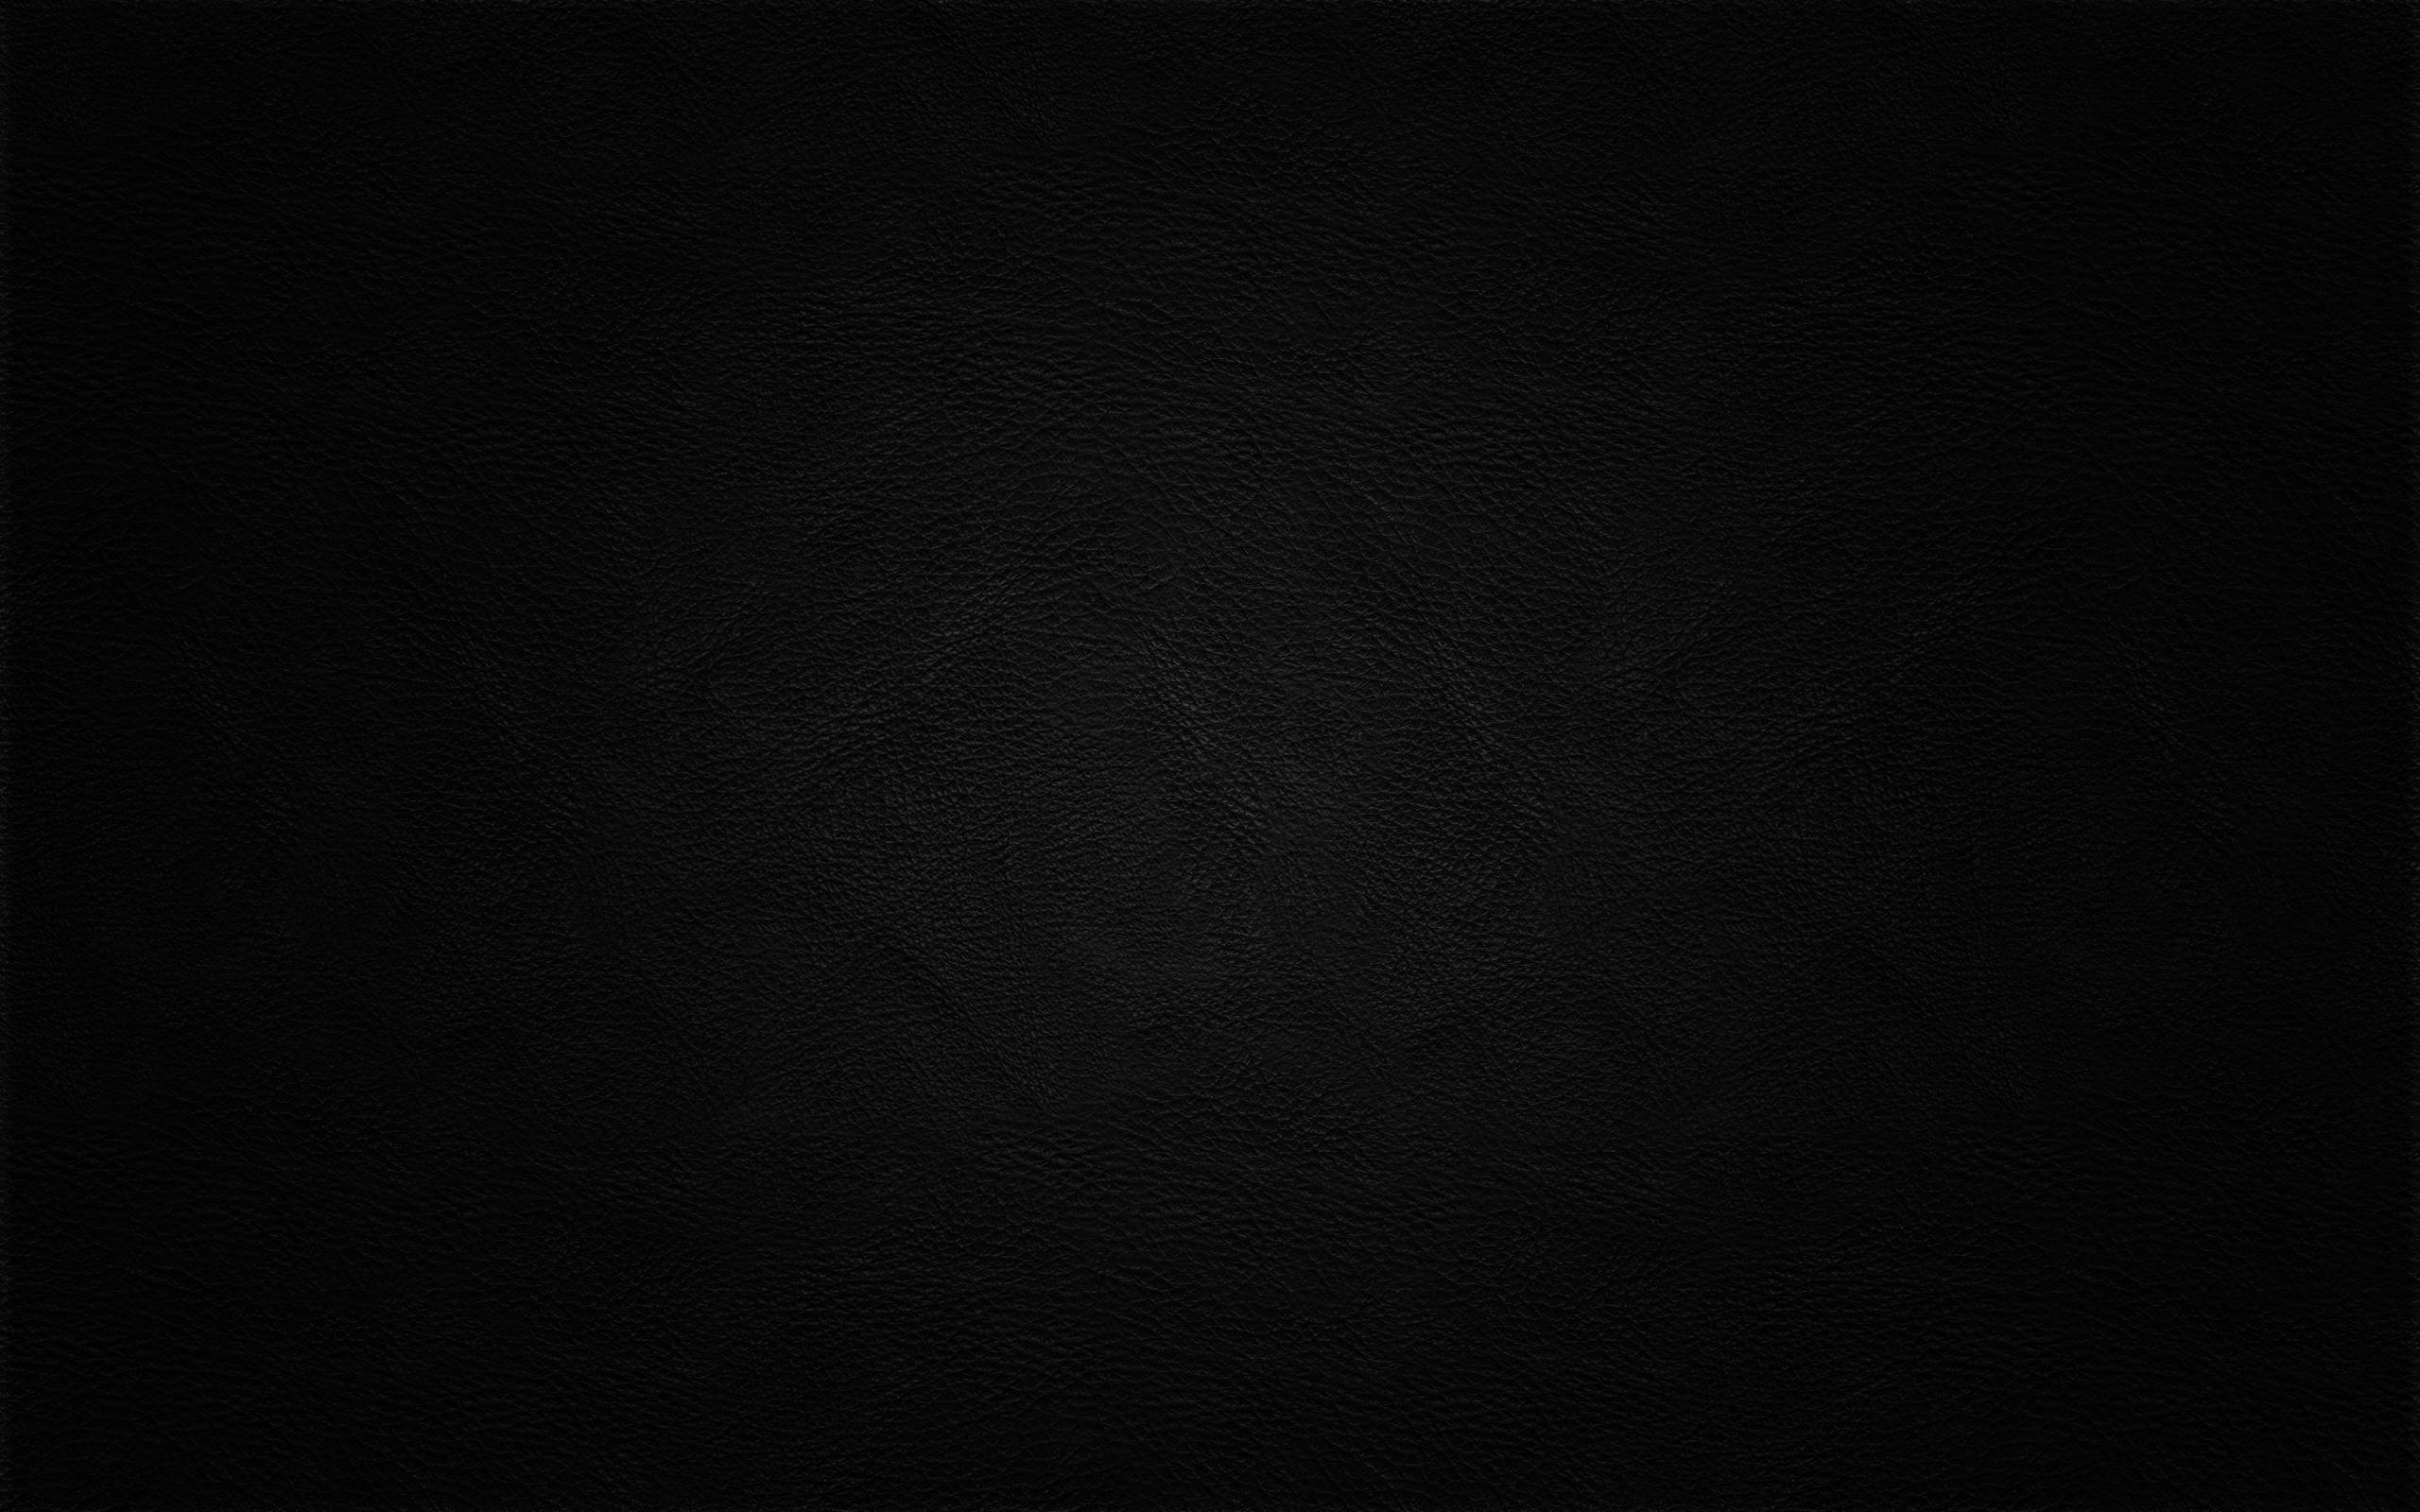 Full Black Wallpaper Download